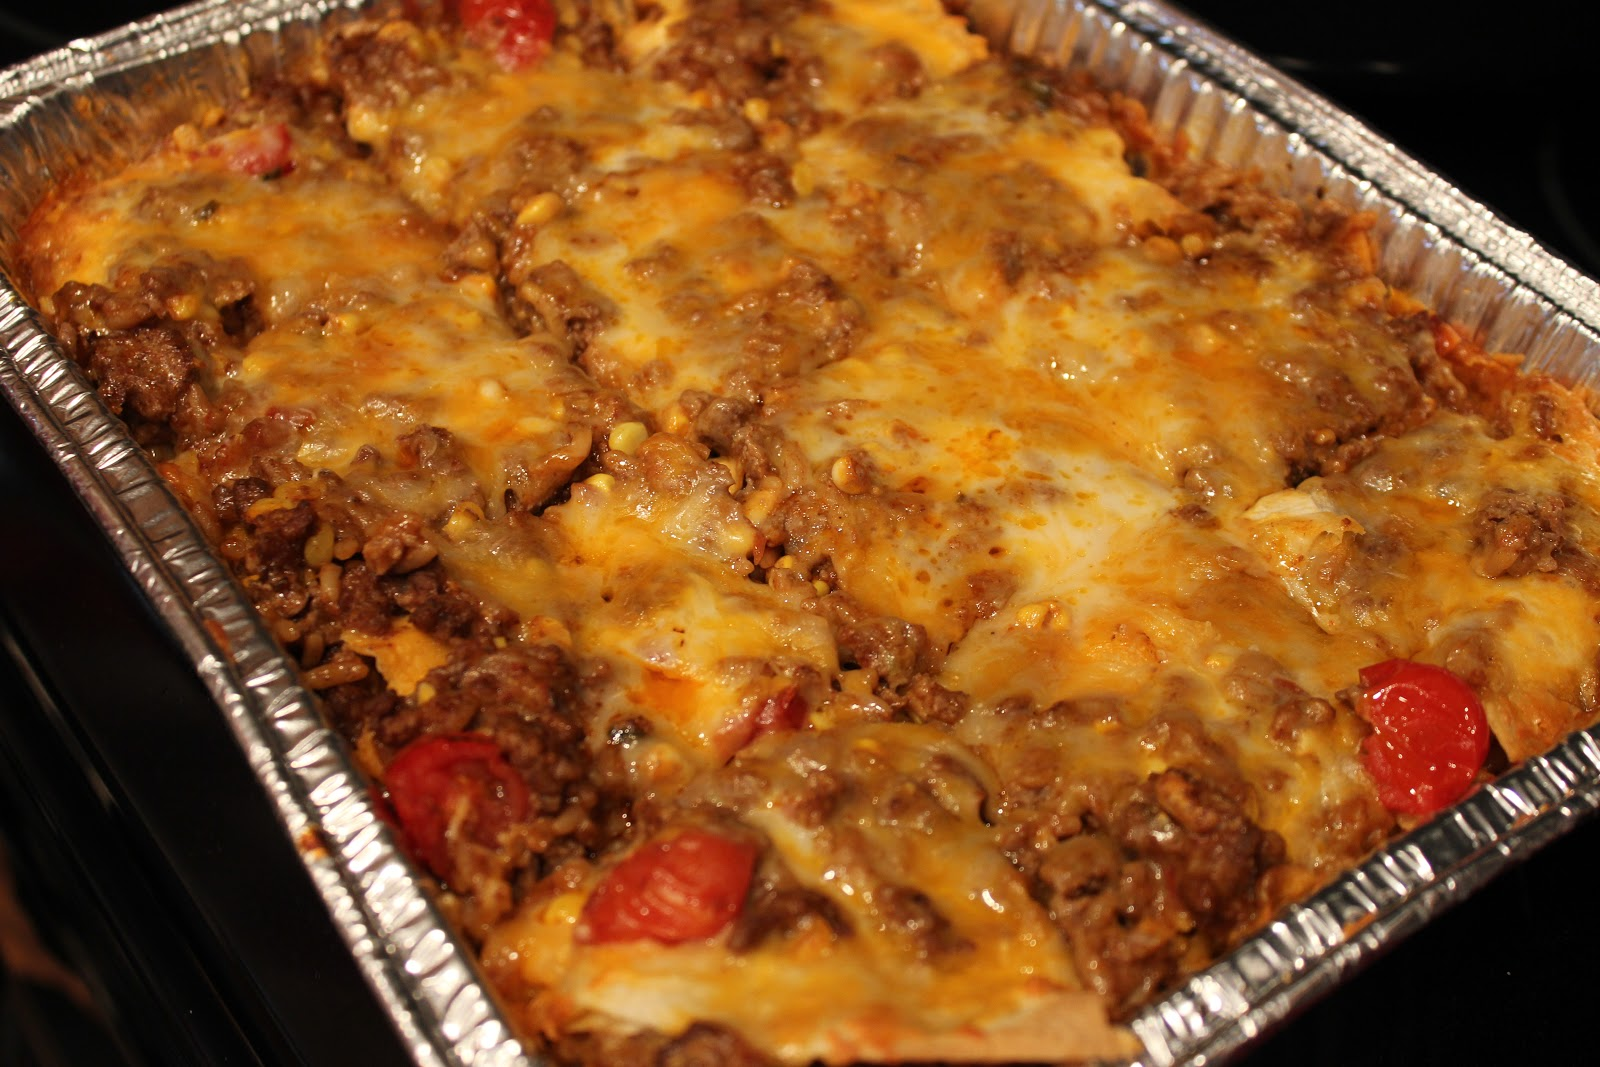 Never trust a skinny cook....: Beef enchilada casserole